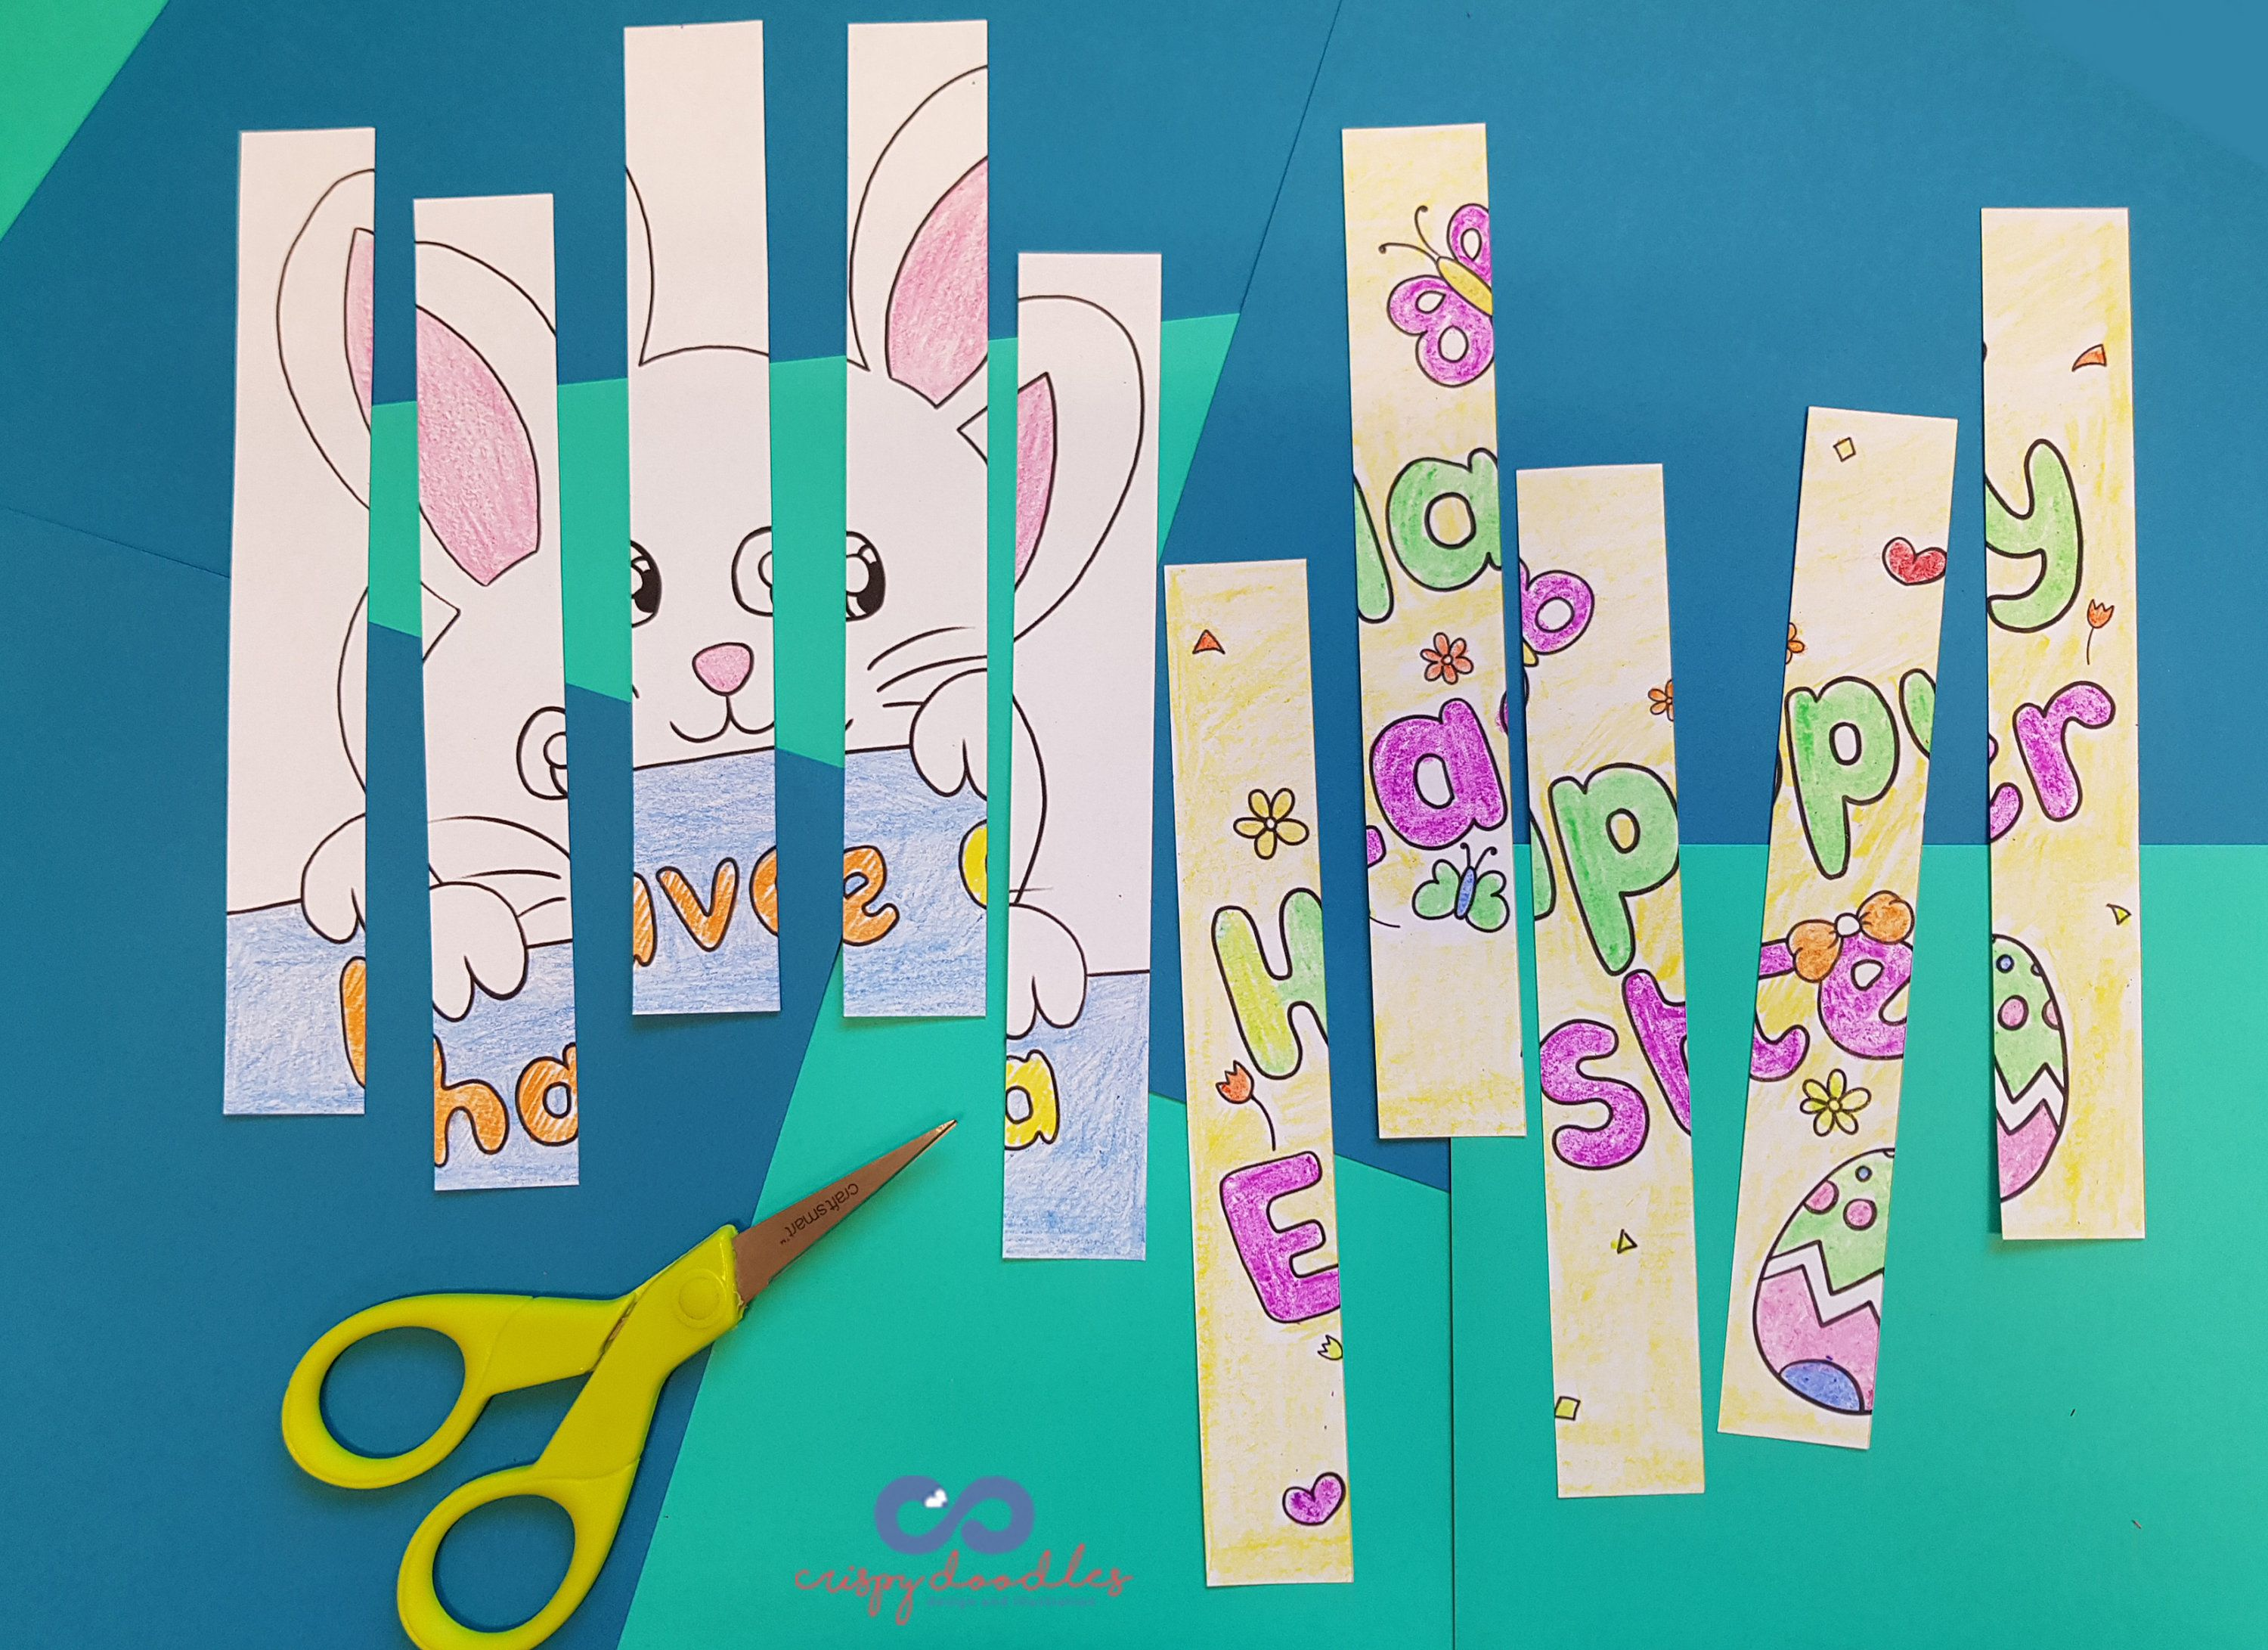 Gallery Easter and Spring Coloring puzzles maze and more   Etsy   Easter ... is free HD wallpaper.